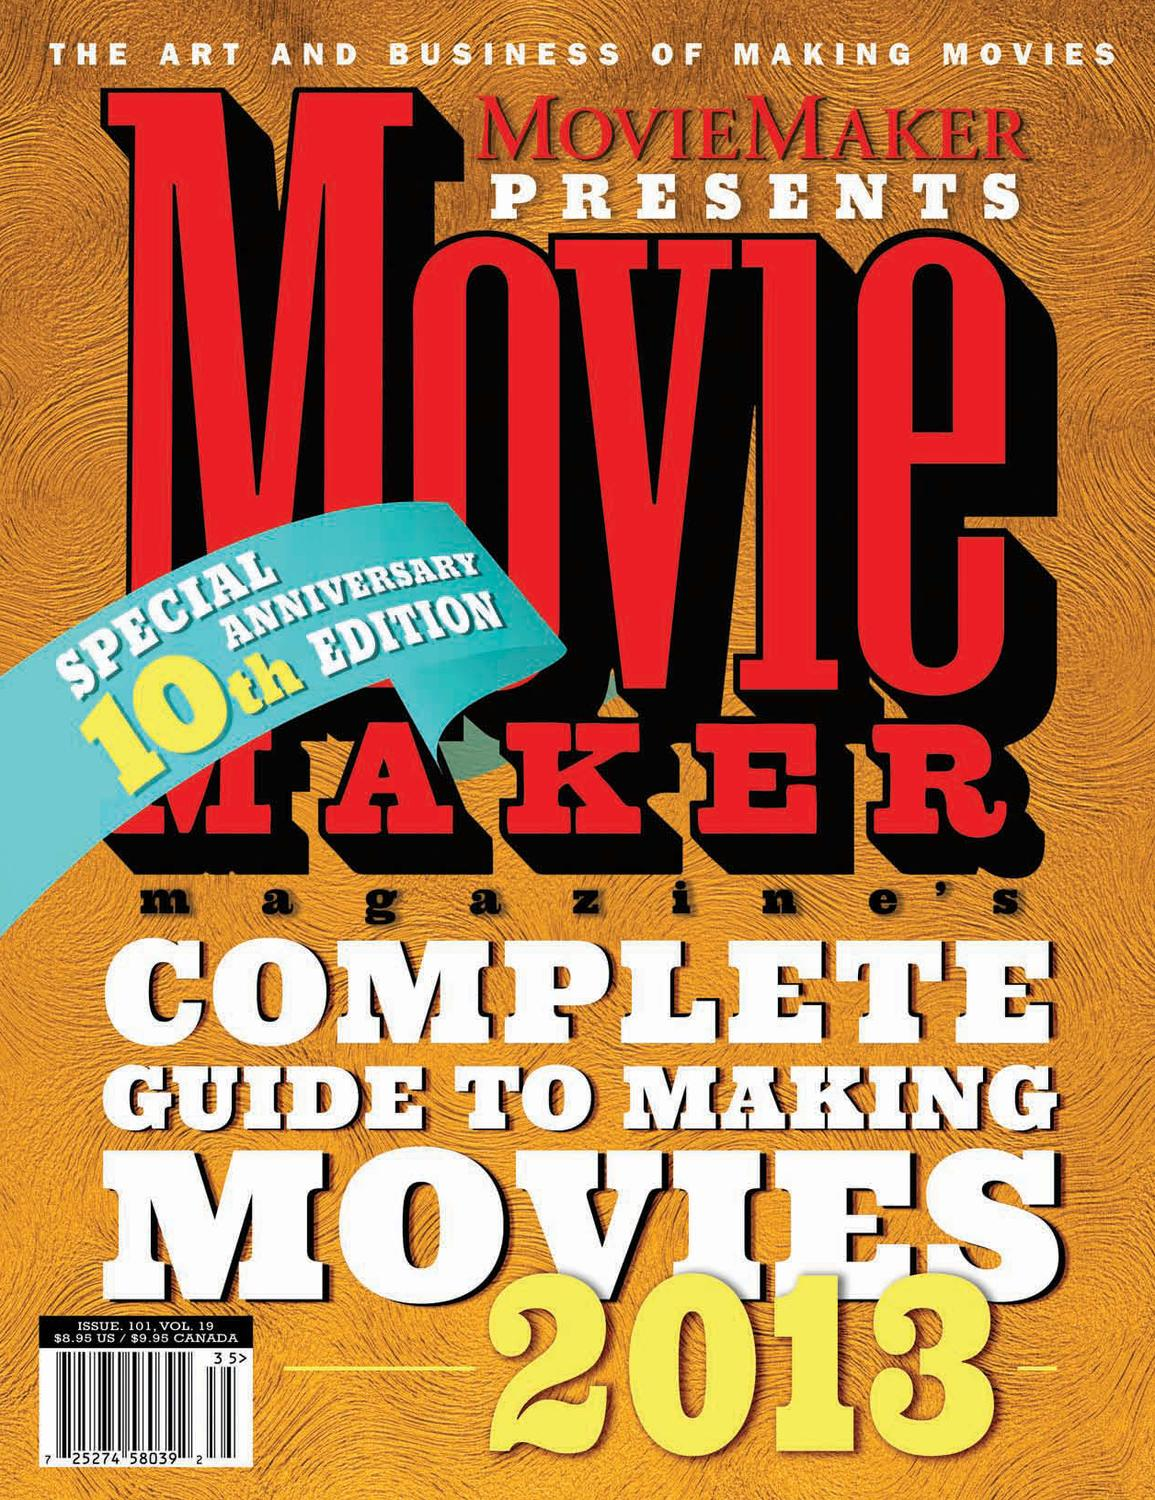 MovieMaker's 2013 Complete Guide to Making Movies by MovieMaker Magazine -  issuu